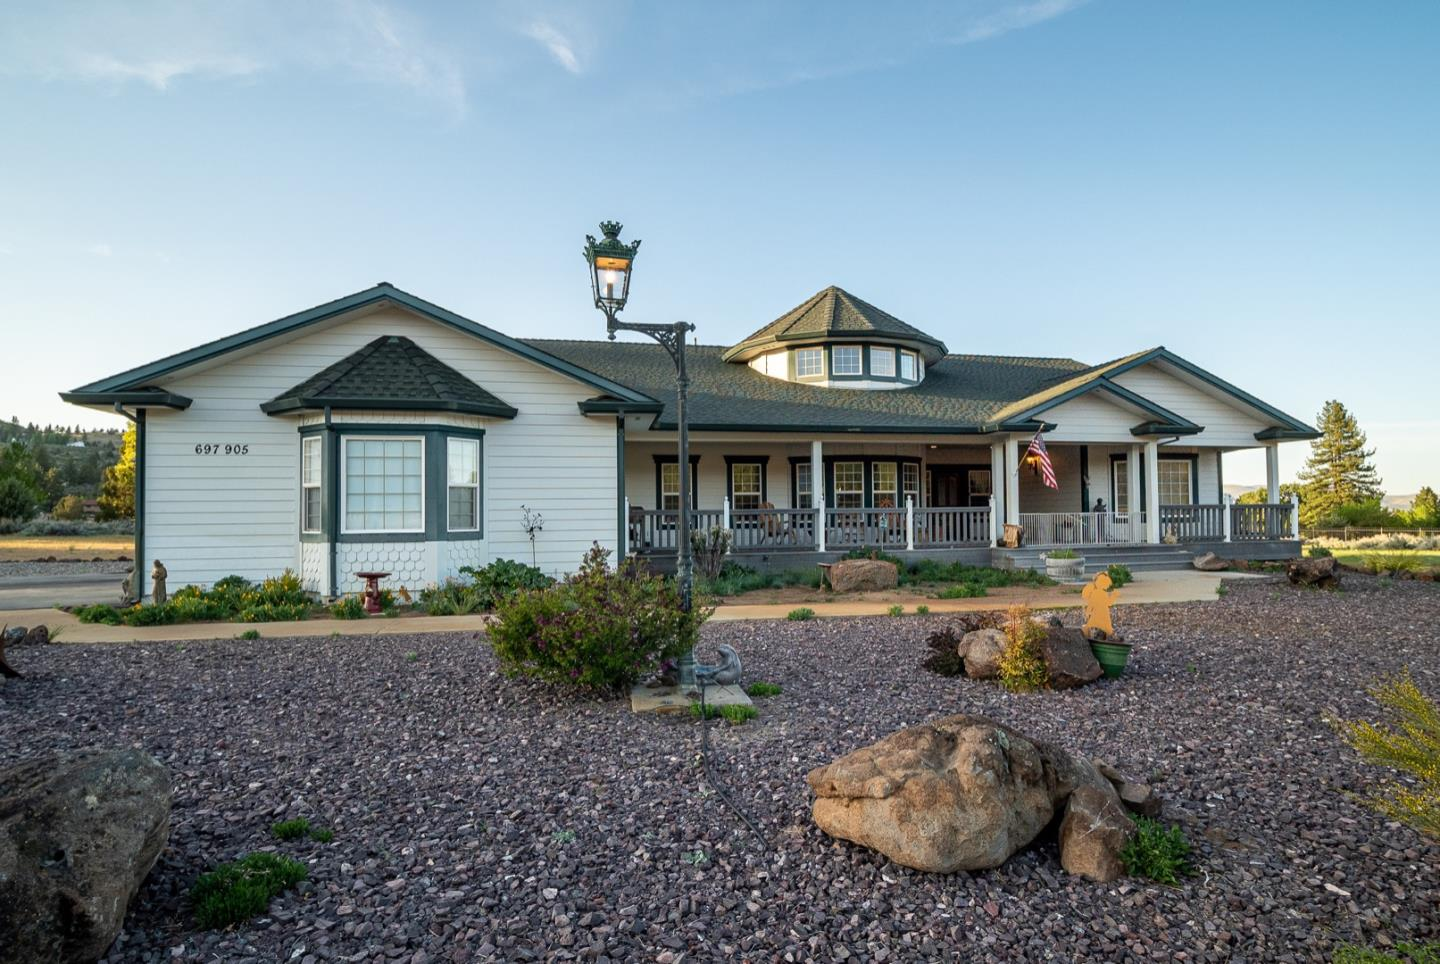 Detail Gallery Image 1 of 26 For 697-905 Hill Creek Rd, Susanville,  CA 96130 - 3 Beds | 2 Baths